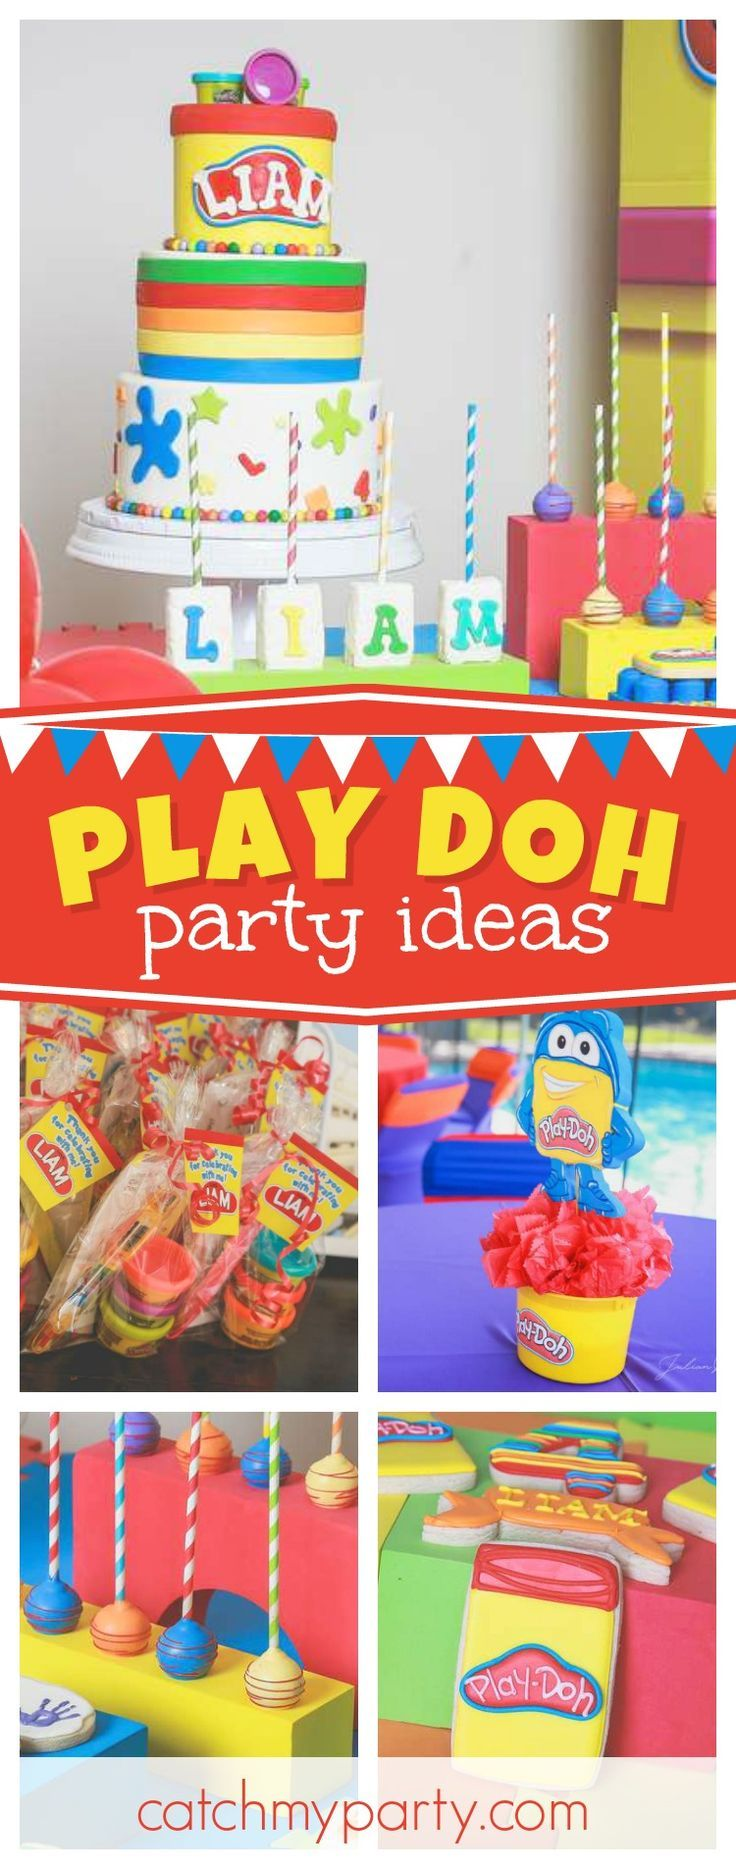 Check out this fun Play Doh birthday party! The birthday ...